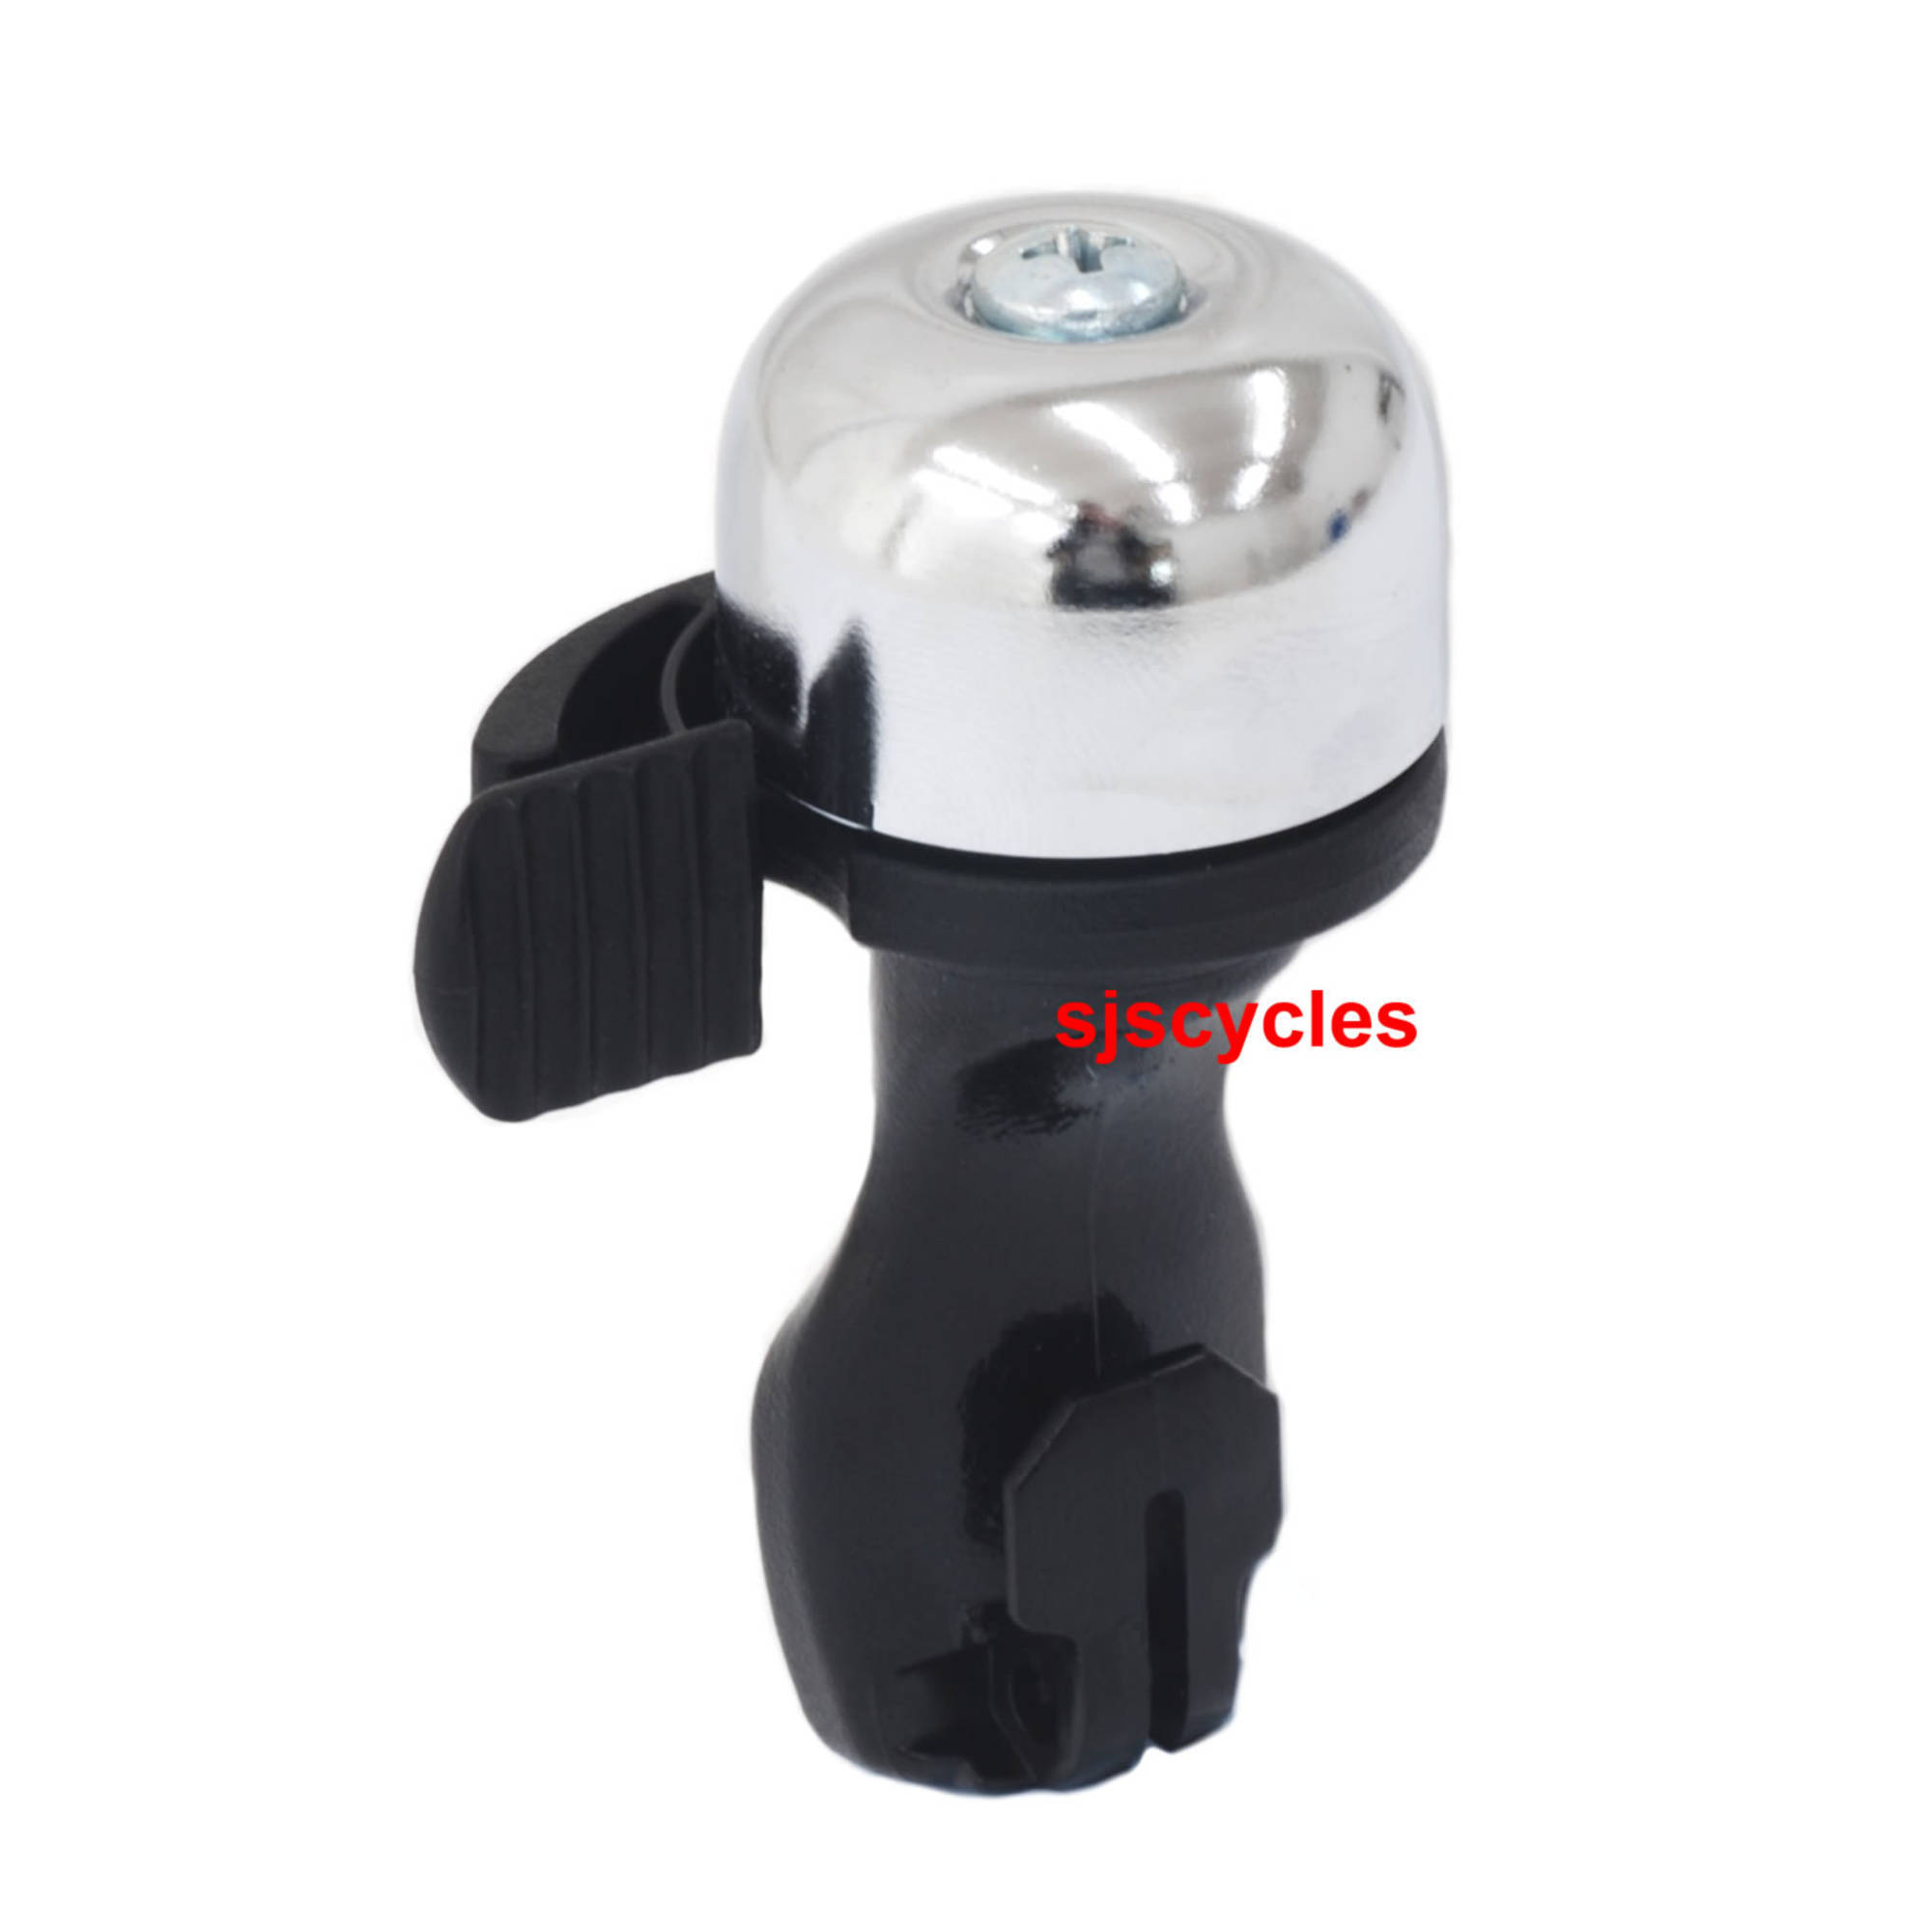 MIRRYCLE INCREDIBELL Road Bike Bicycle Bell Blk For SHIMANO STI Brake Levers NEW